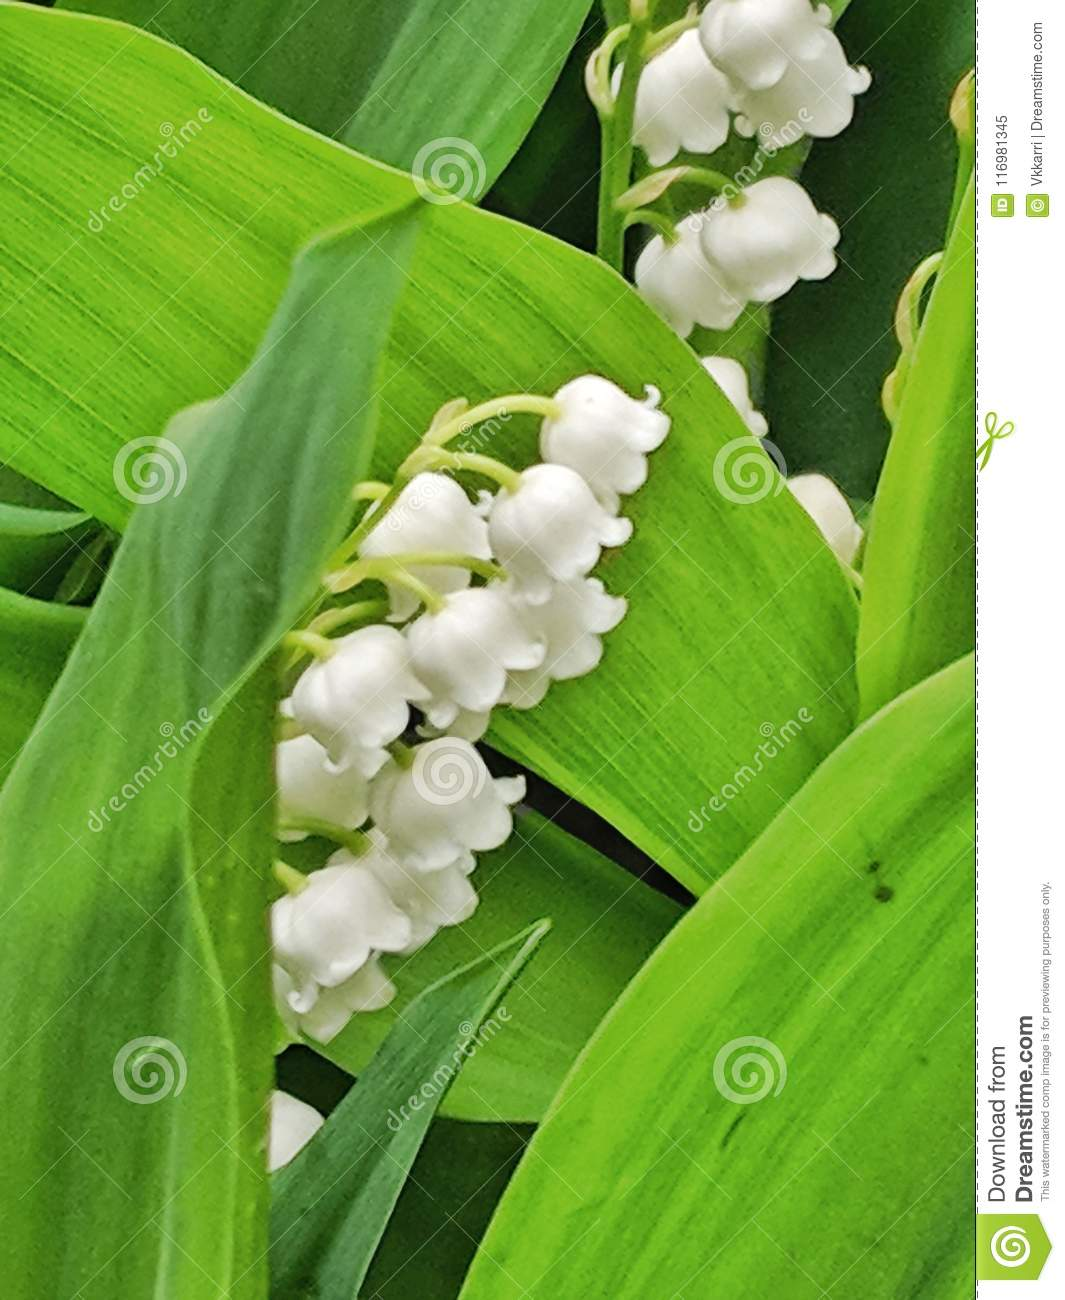 Lily Of The Valley Flowers In Bloom Stock Image Image Of Loving